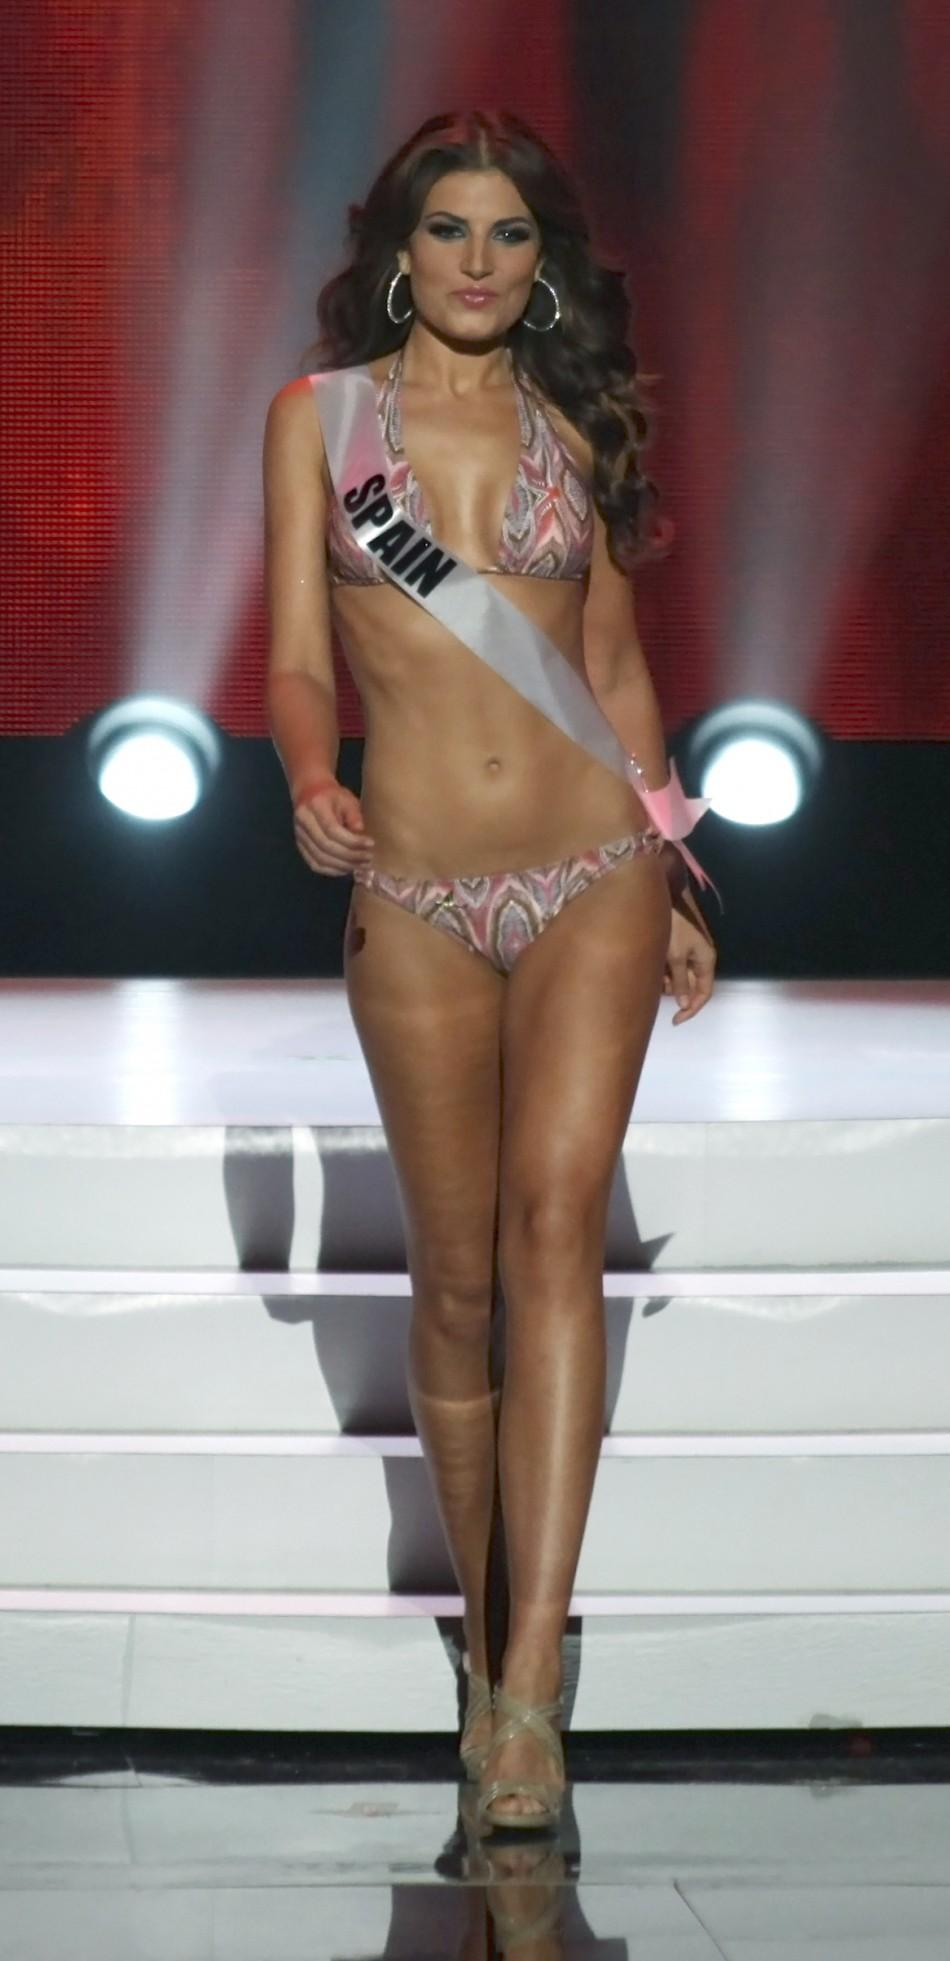 Photos: Miss Universe 2011 Swimsuit Competition